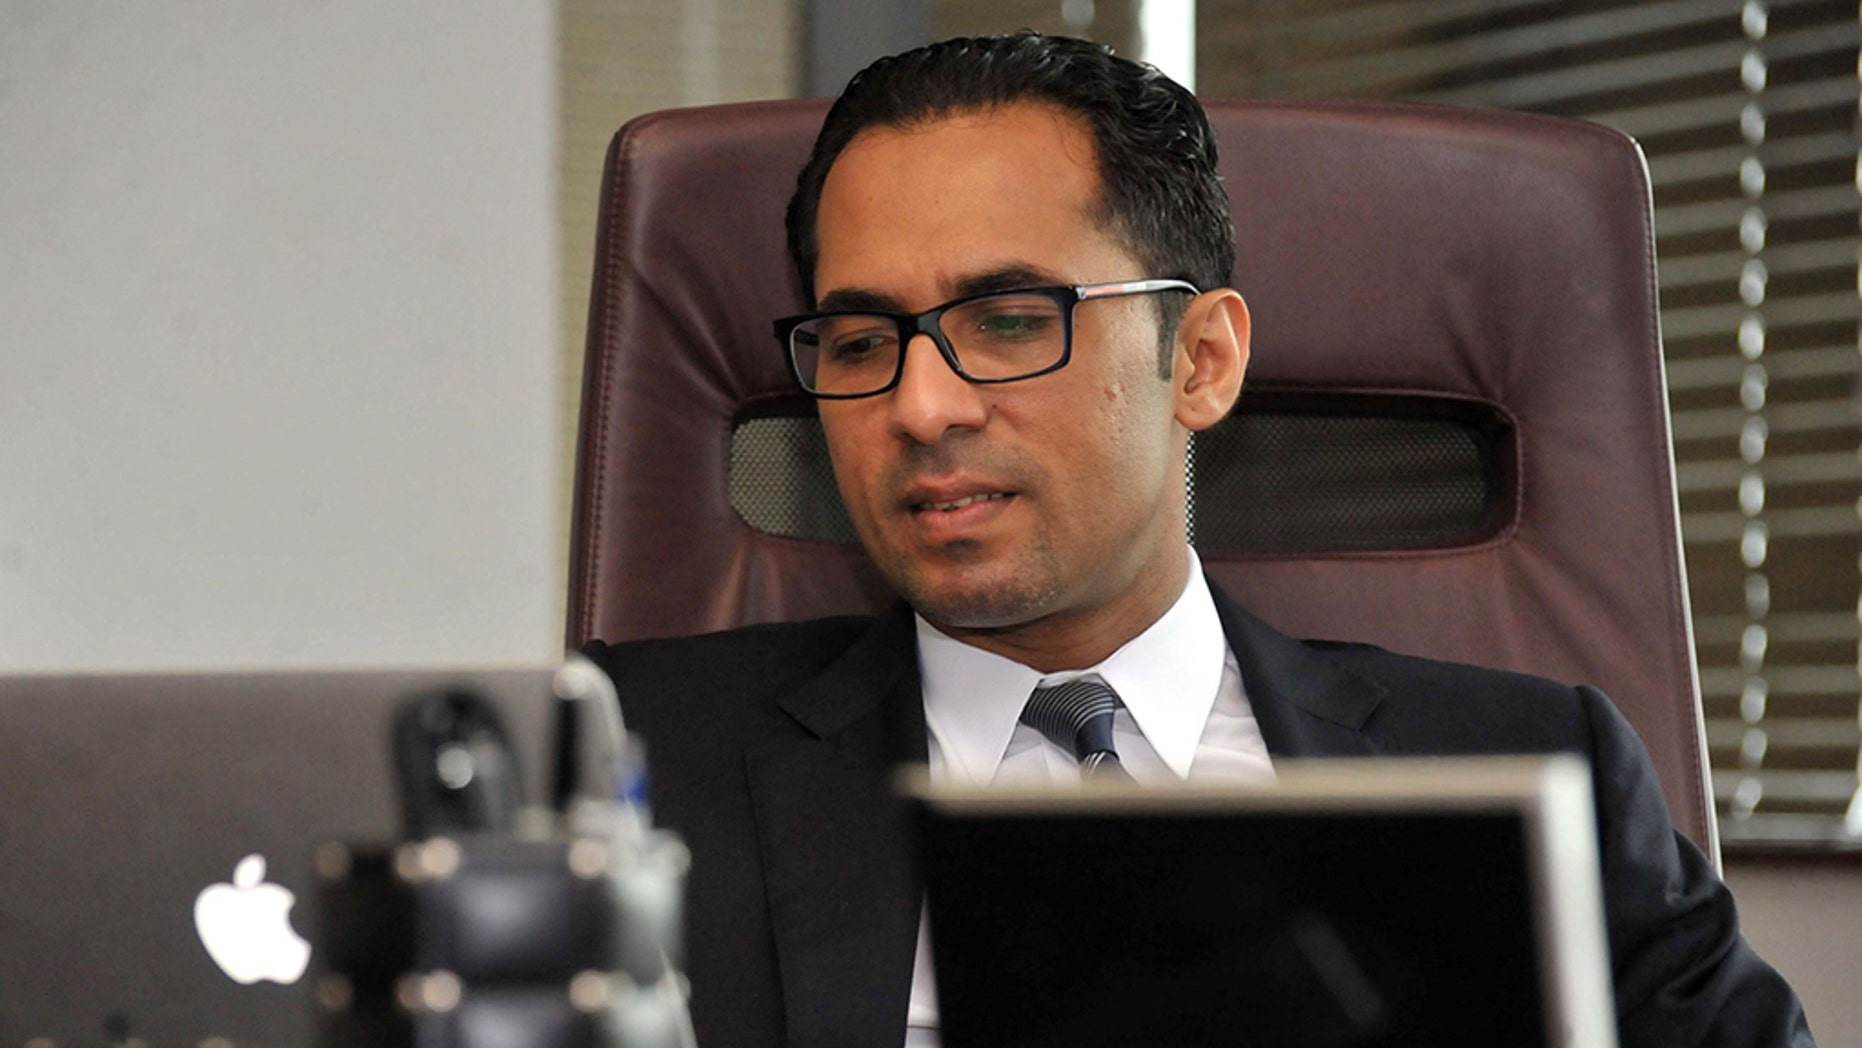 Mohammed Dewji, the man described as Africa's youngest billionaire, said he is free more than a week after his abduction.